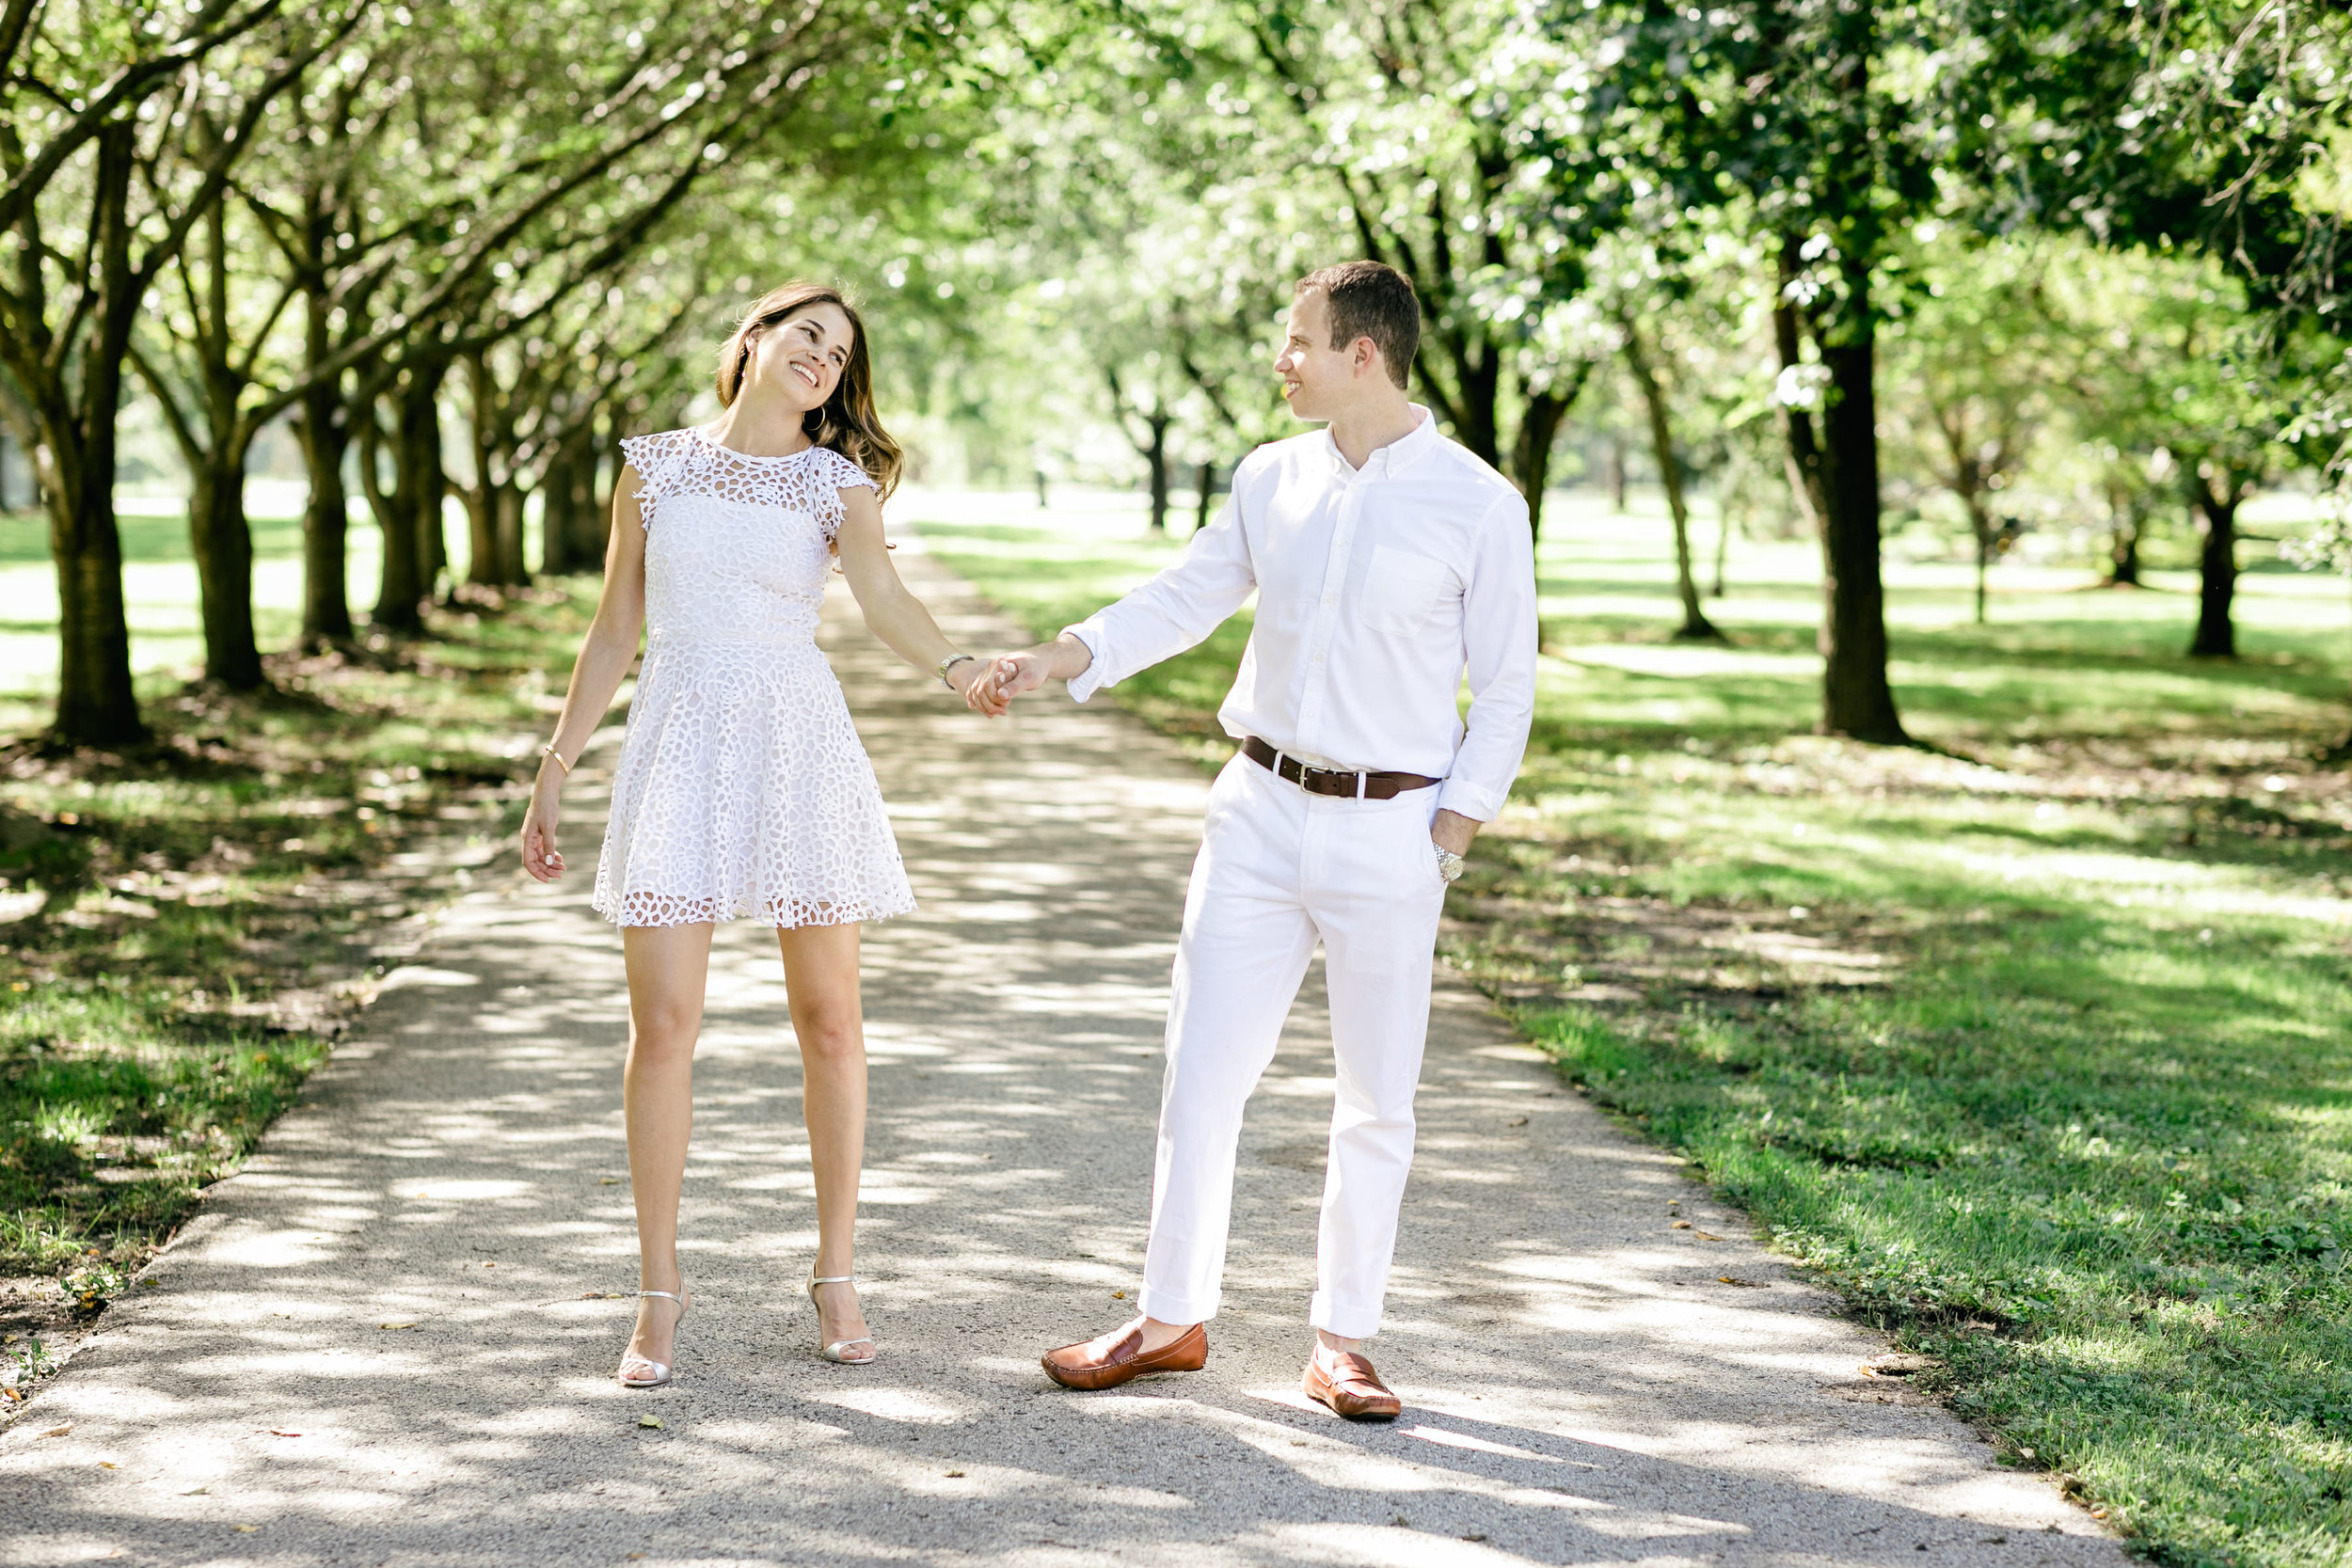 photography-family-natural-candid-engaged-fairmount-philadelphia-wedding-horticultural center-modern-lifestyle-15.JPG